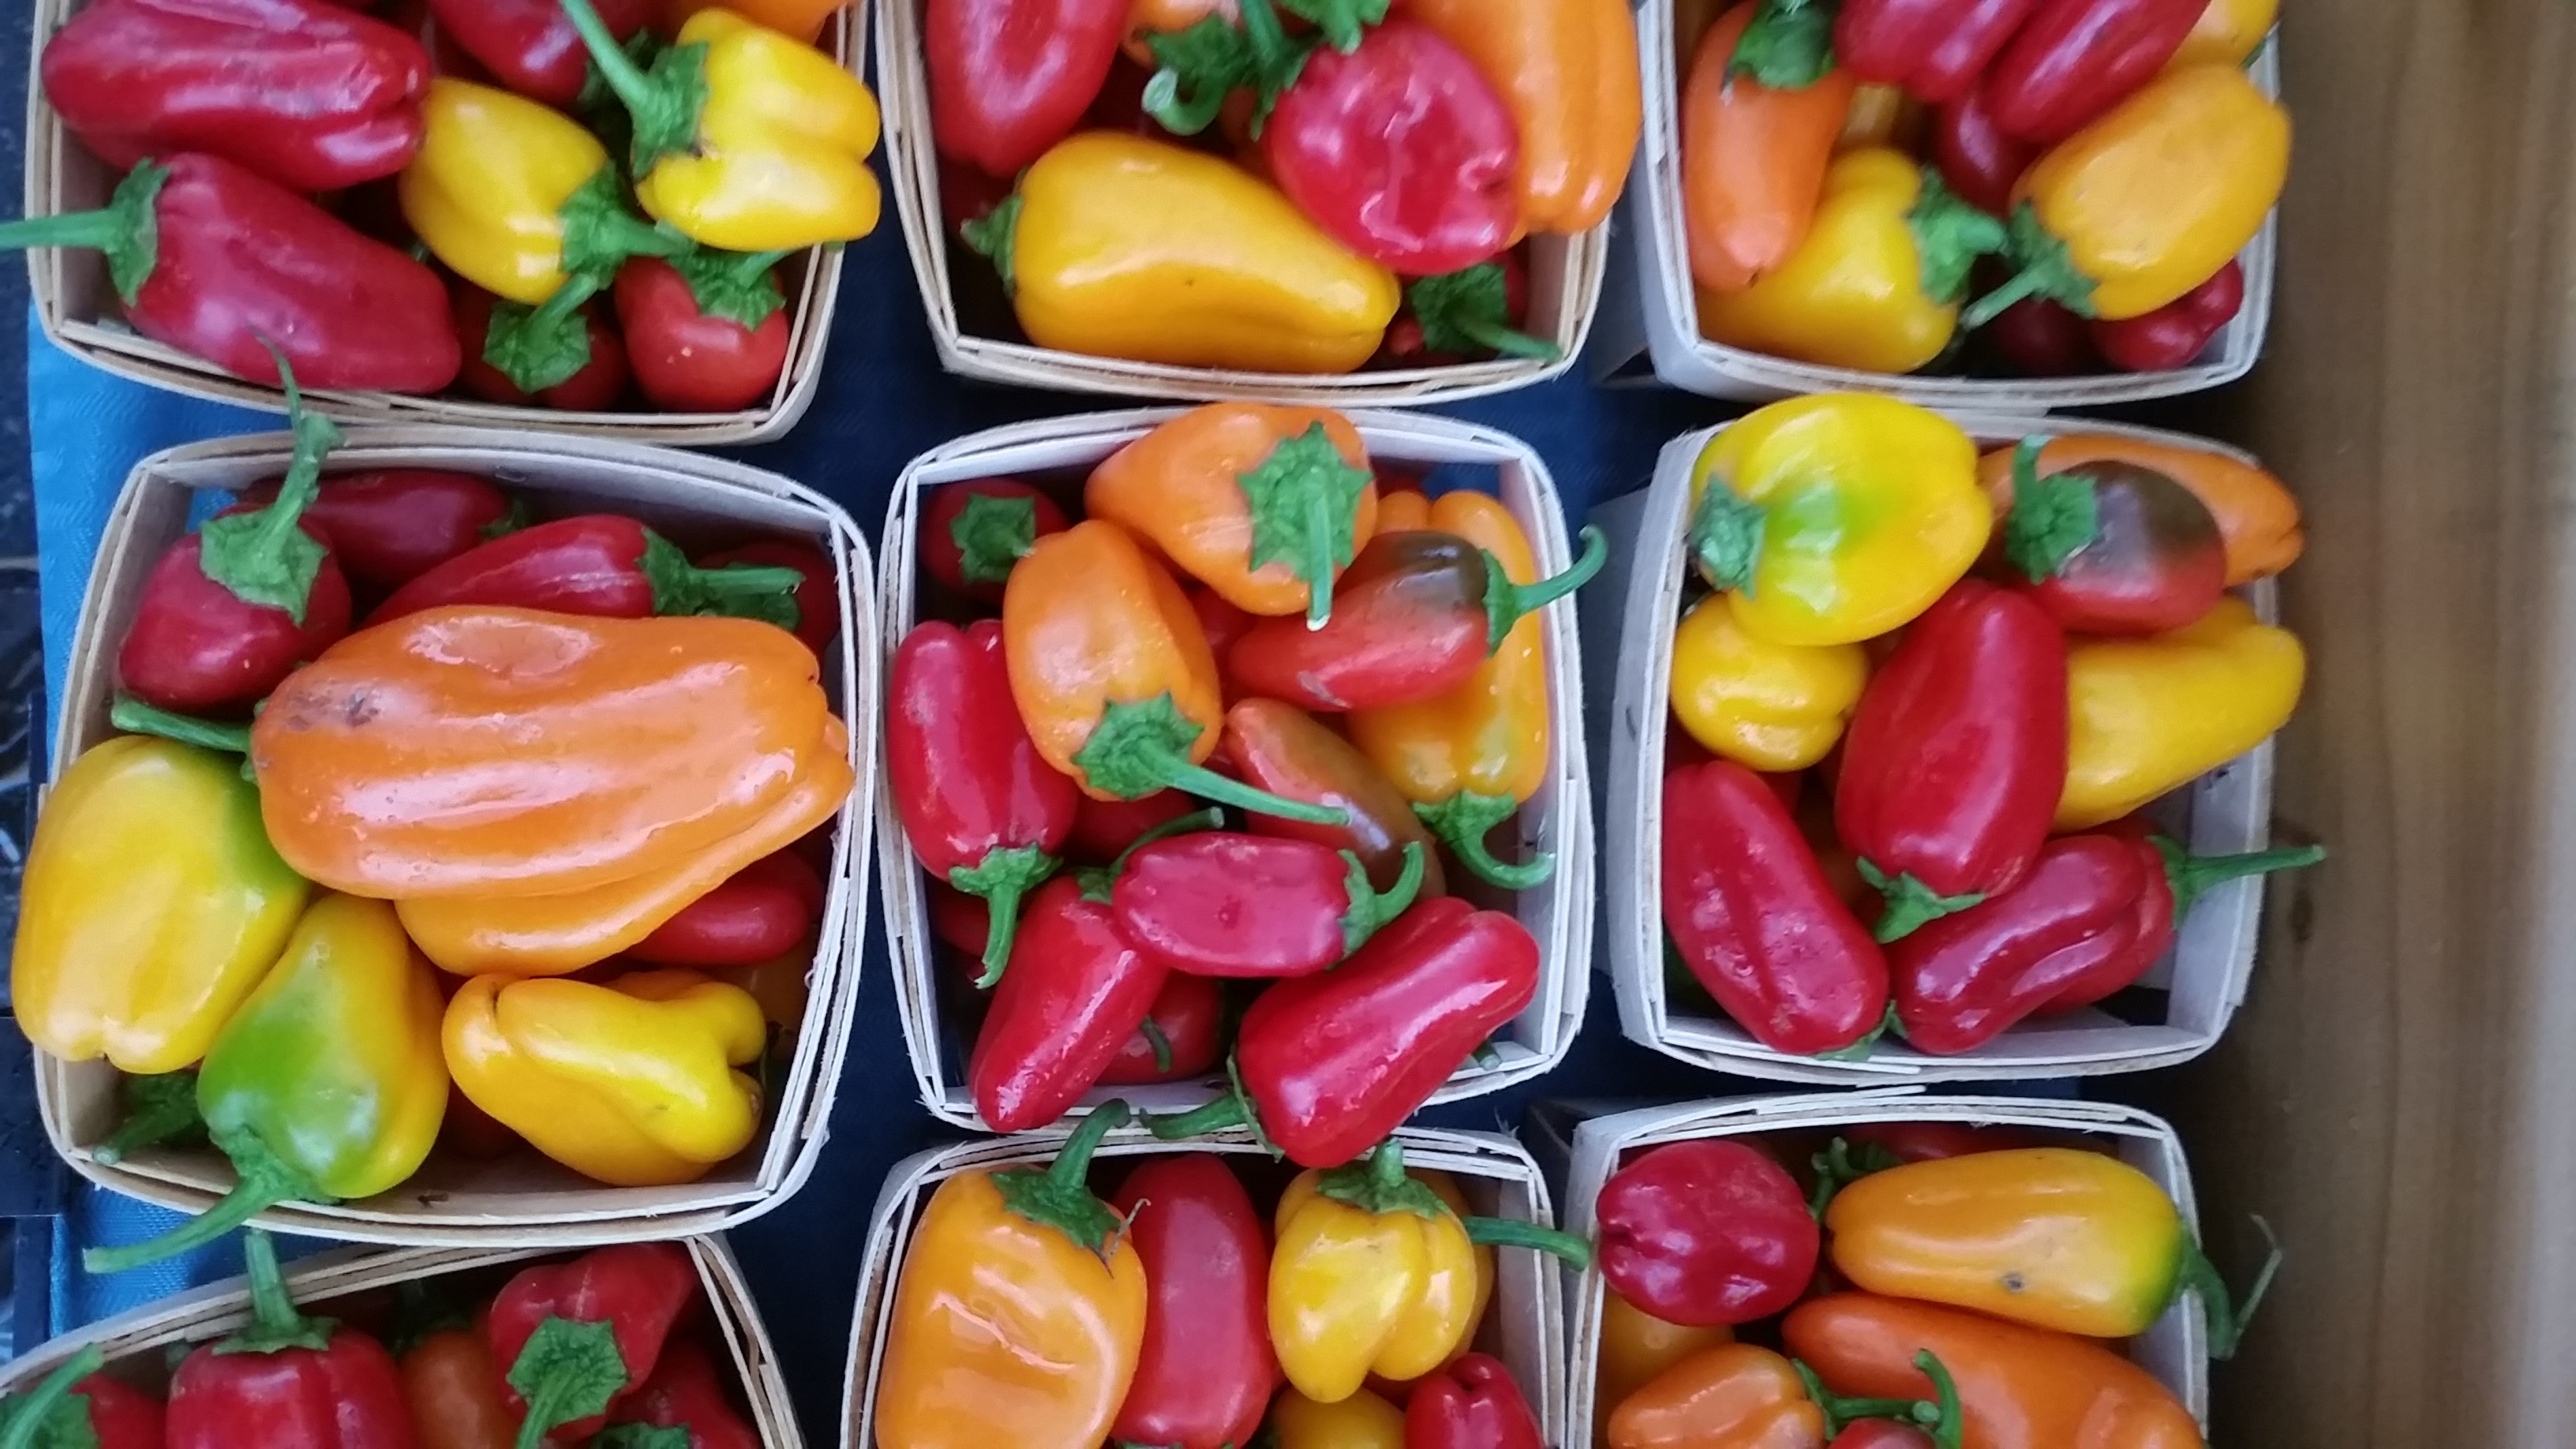 Lunch box sweet peppers at market